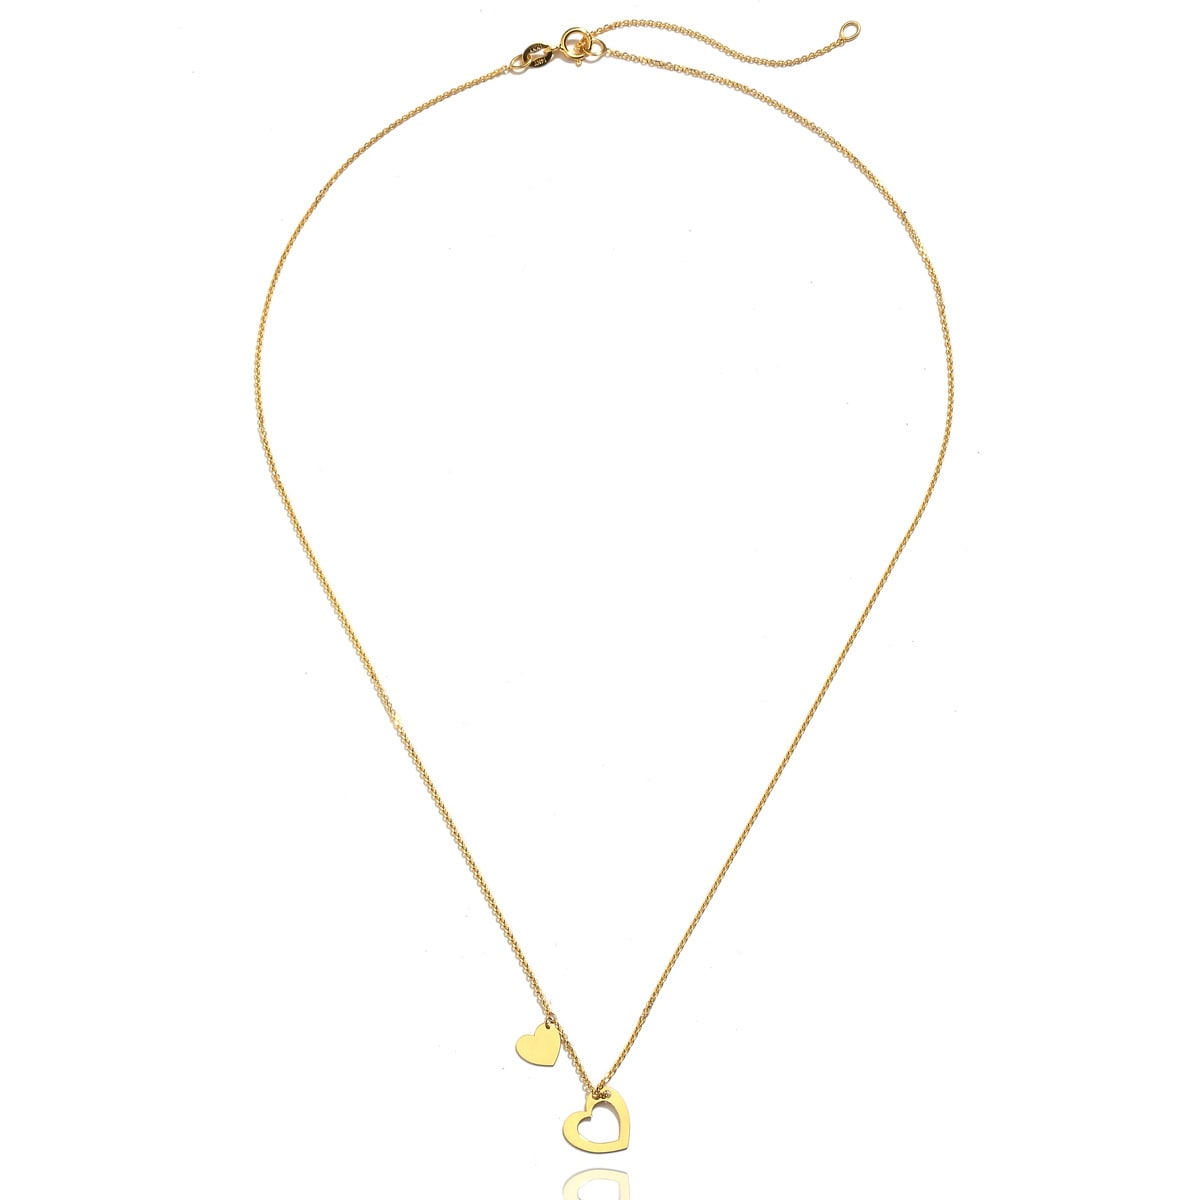 14K Yellow Gold Floating Heart Pendant on an Adjustable 14K Yellow Gold Chain Necklace